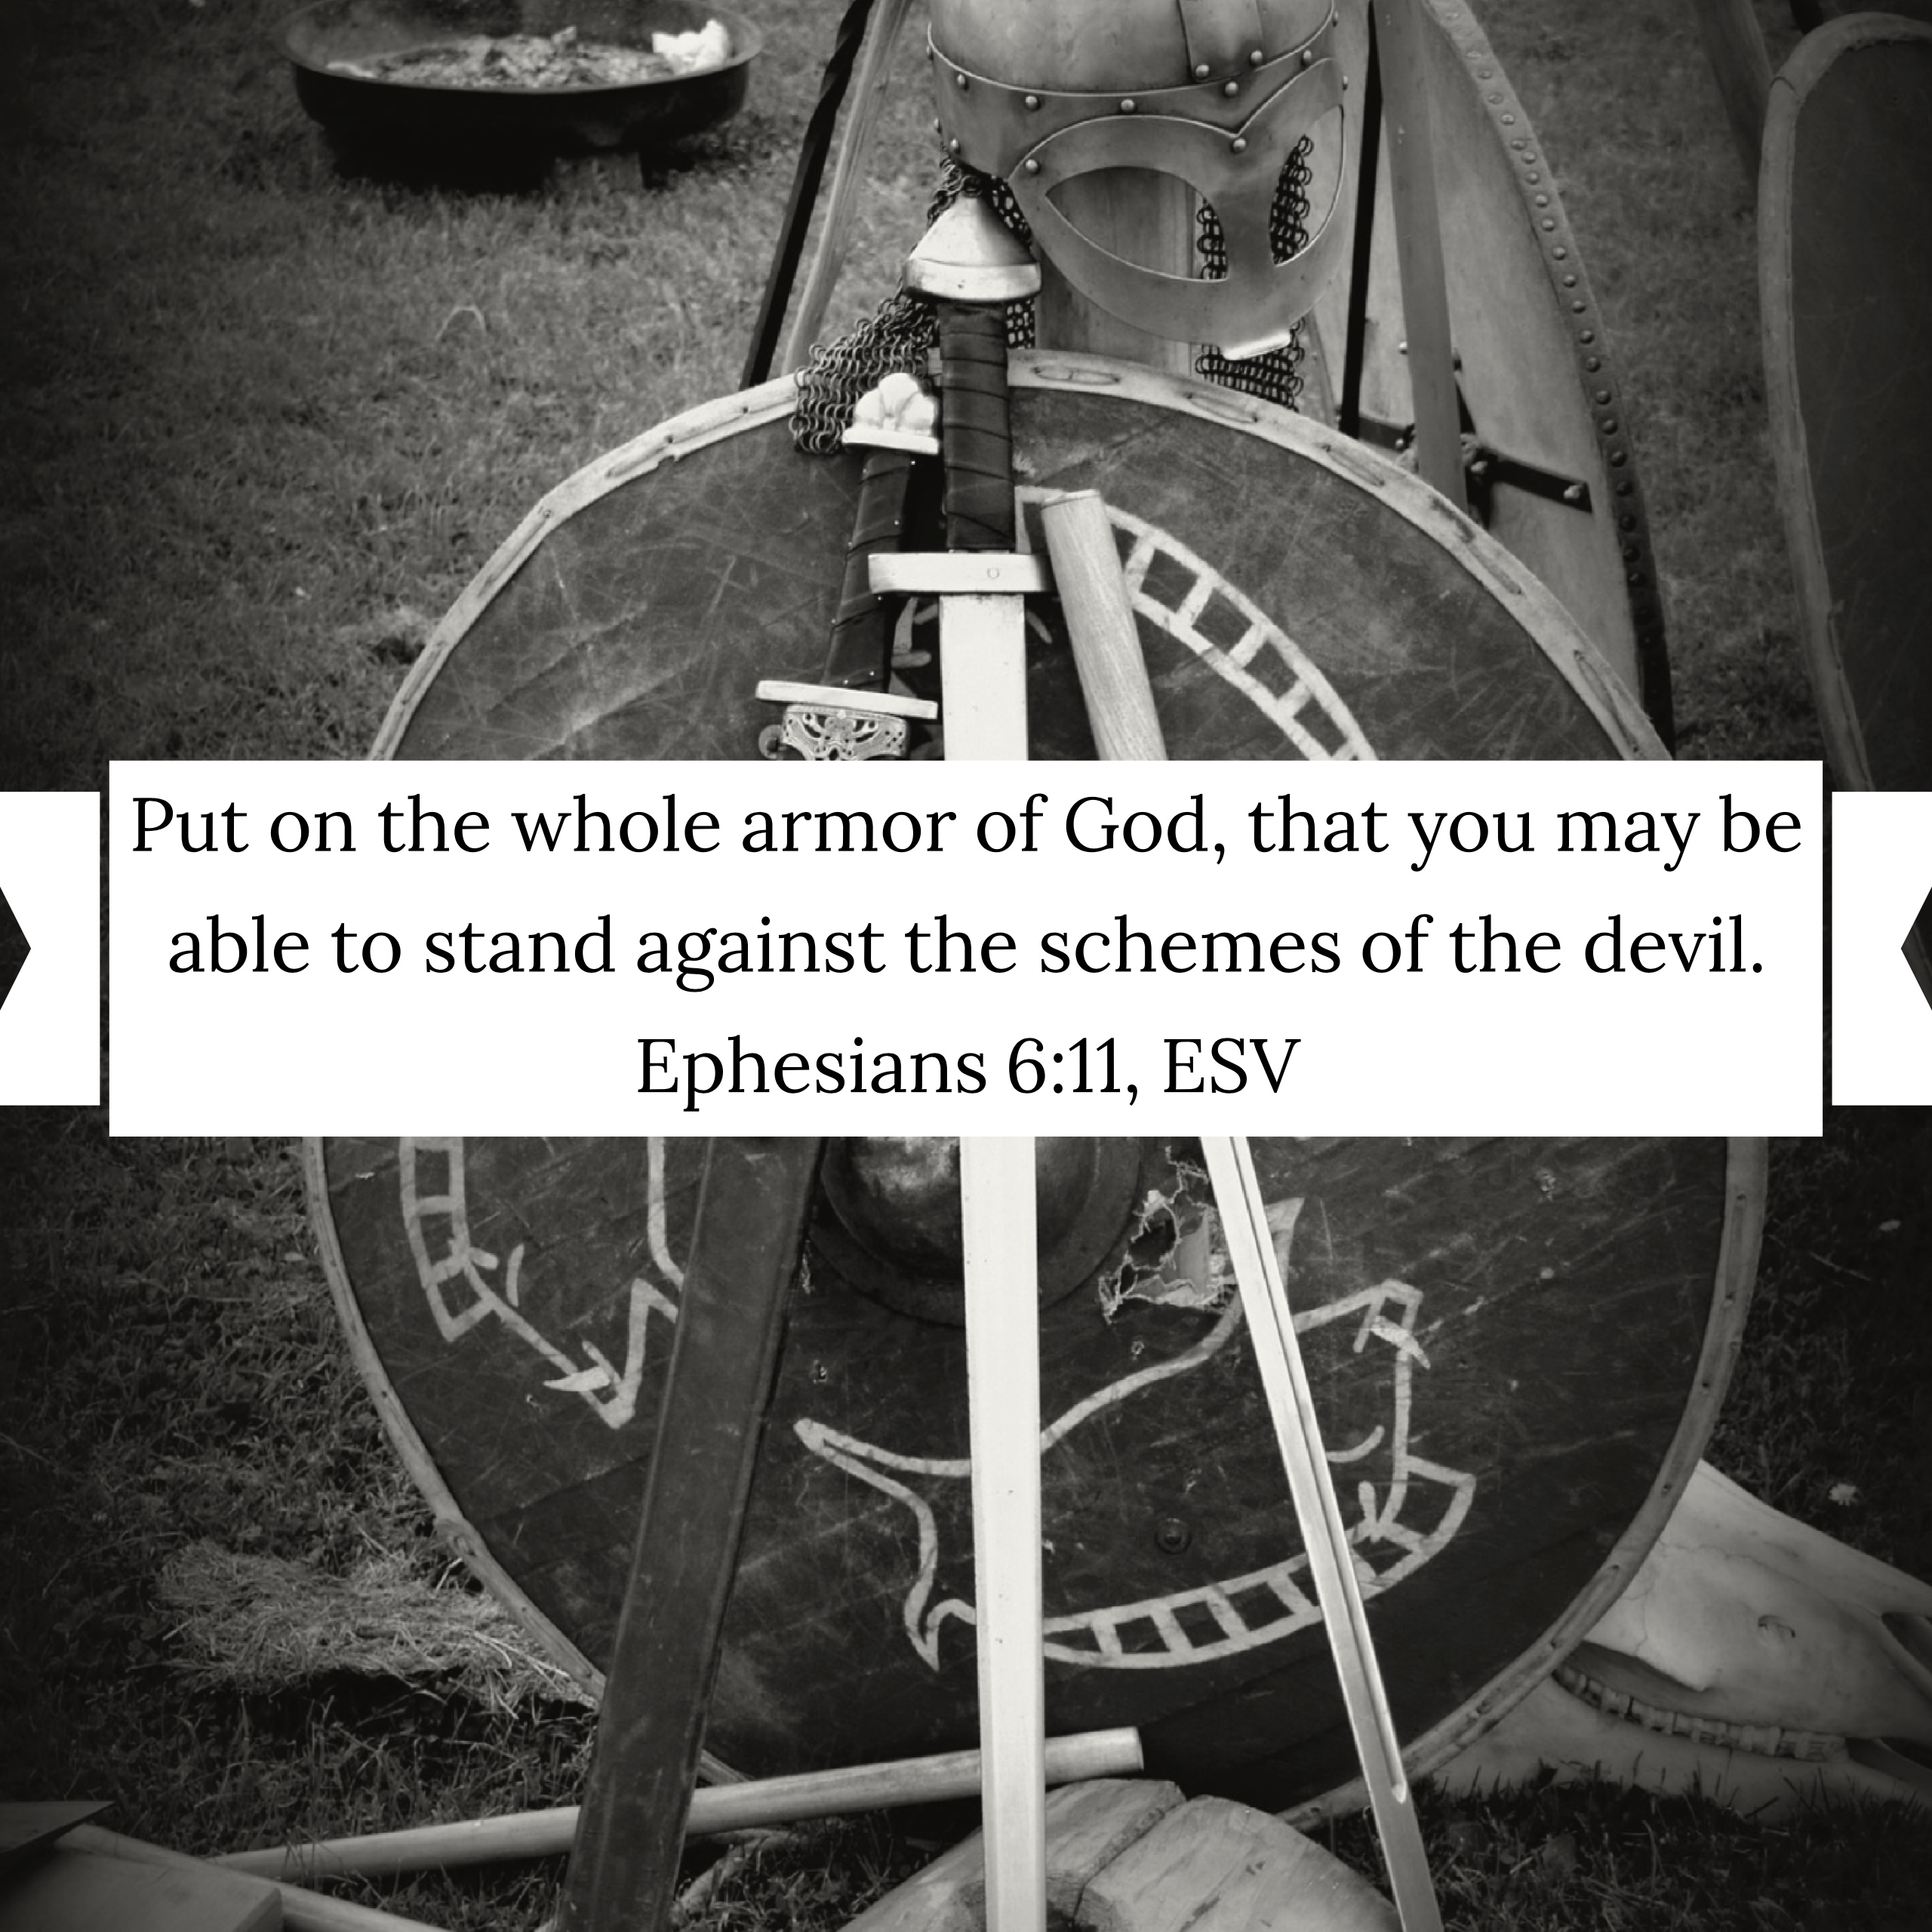 """Put on the whole armor of God, that you may be able to stand against the schemes of the devil,"" (Ephesians 6:11, ESV)."